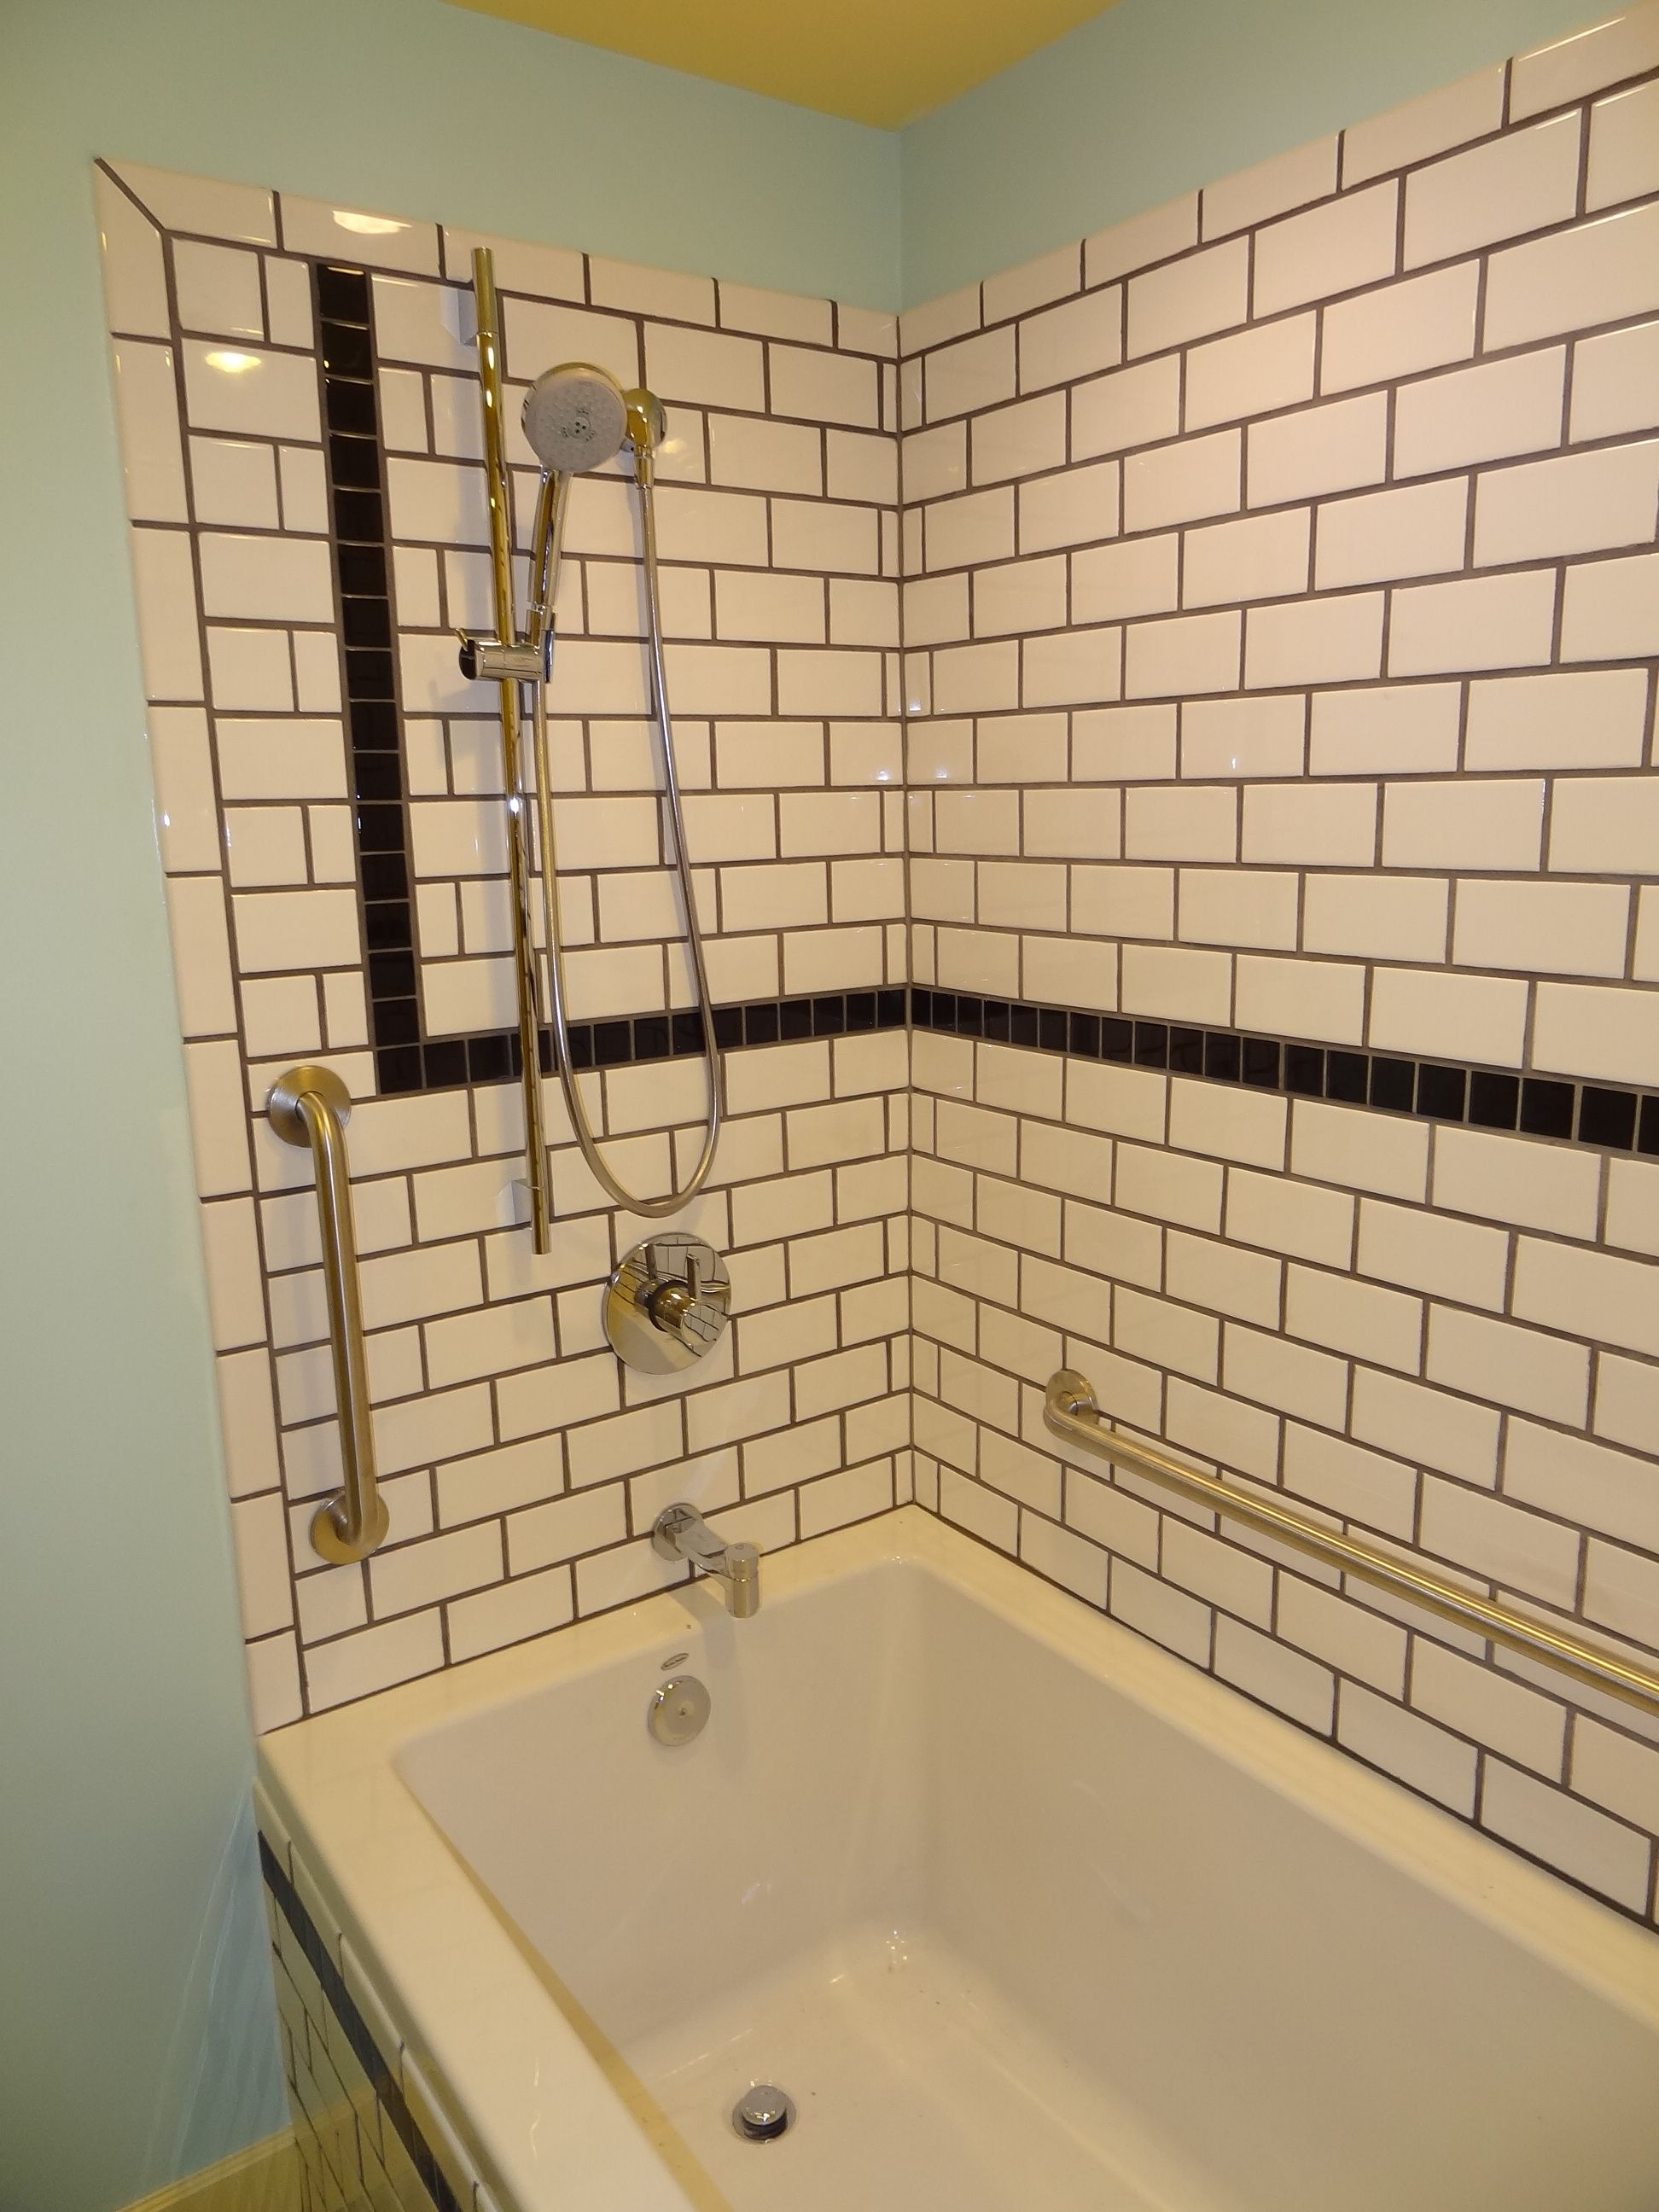 bullnose tile meets tub instead of